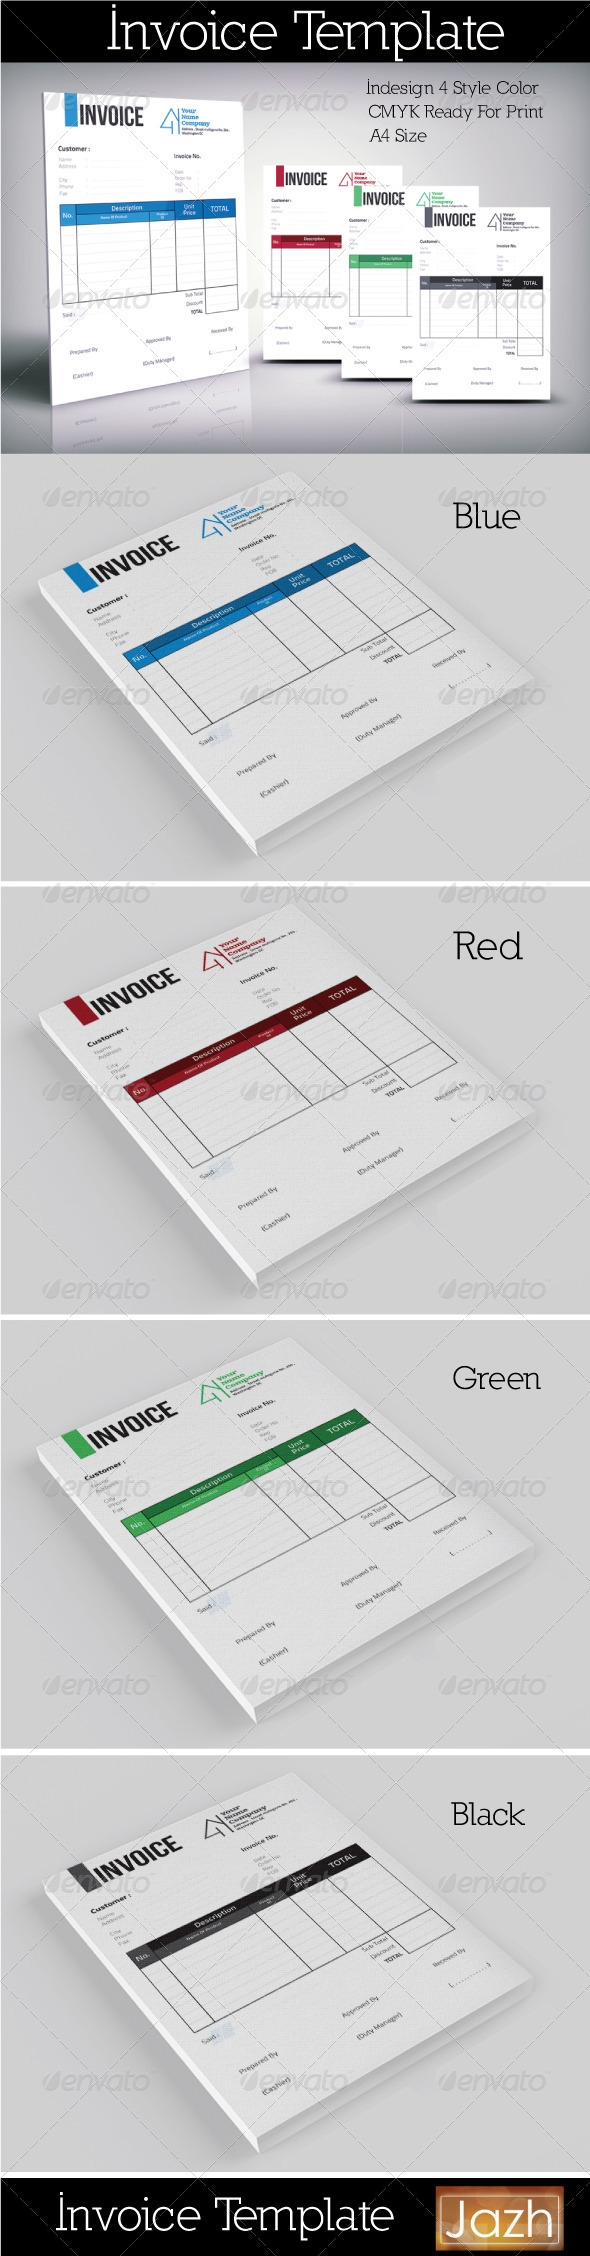 invoice template clean graphicriver invoice template indesign